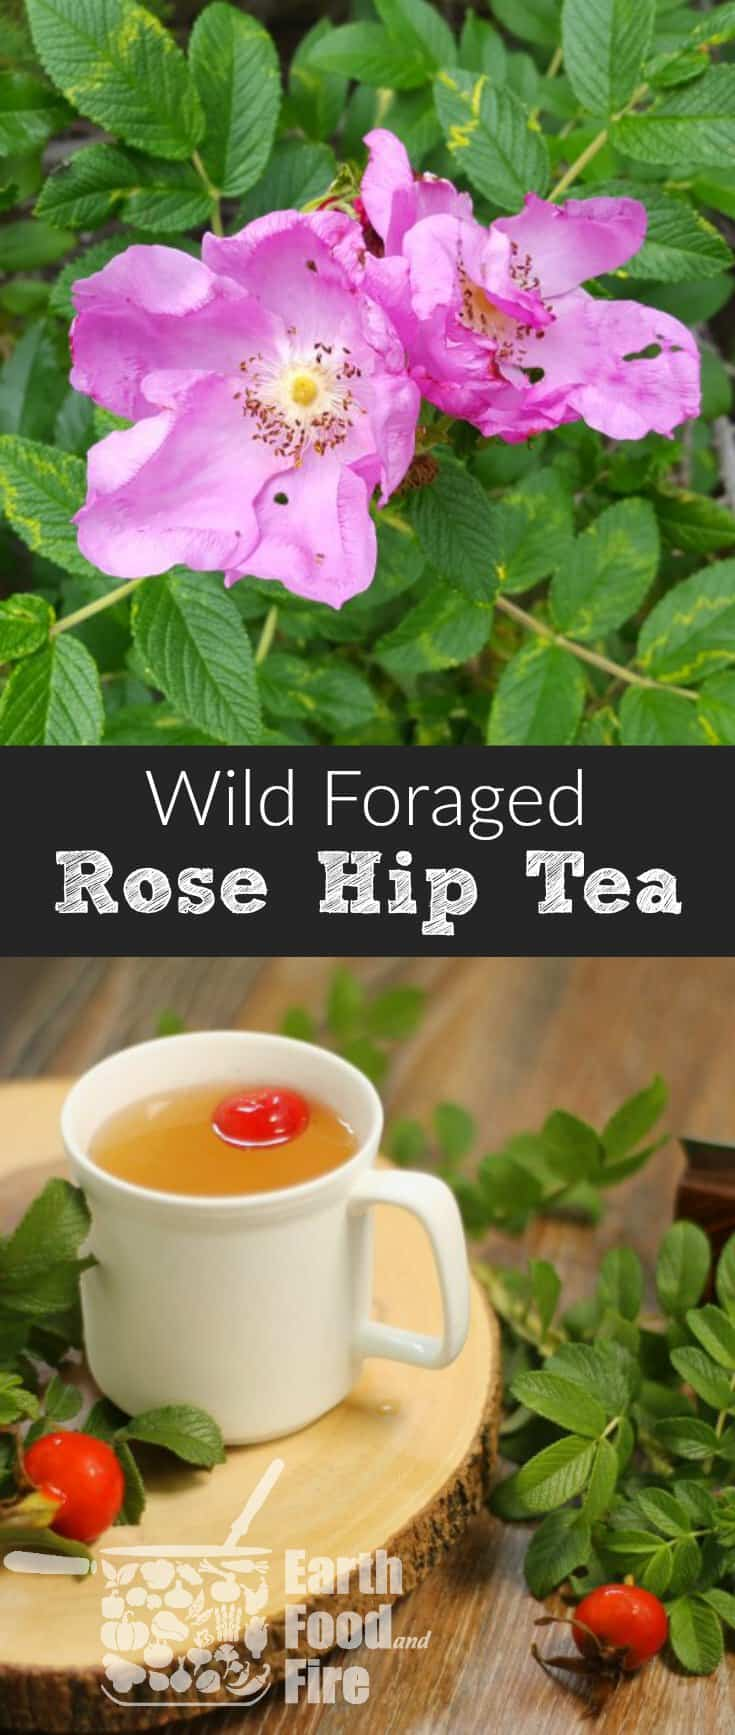 A tart and slightly fruity tea made with foraged wild rose hips, this drink is excellent for use in combating colds and flus due to it's high Vitamin C content. #rosehips #tea #foraging #healthy